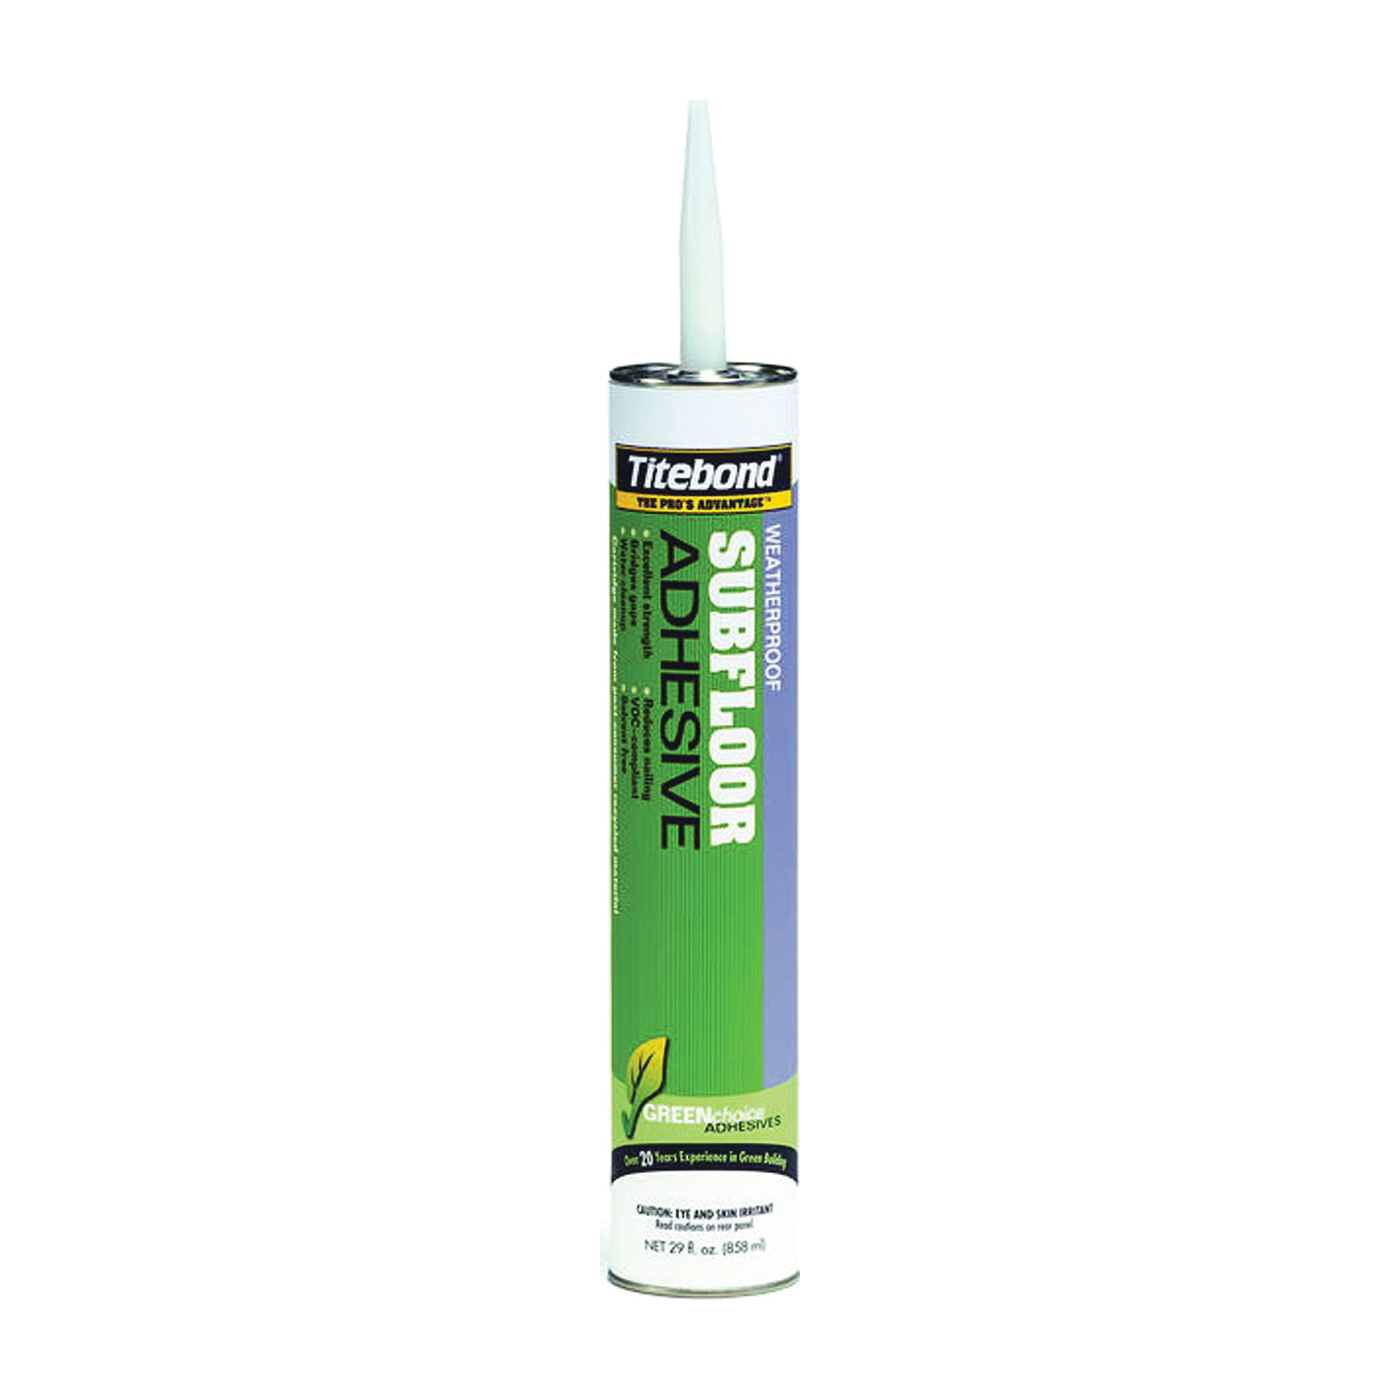 Picture of Titebond 4122 Subfloor Adhesive, Off-White, 28 oz Package, Cartridge